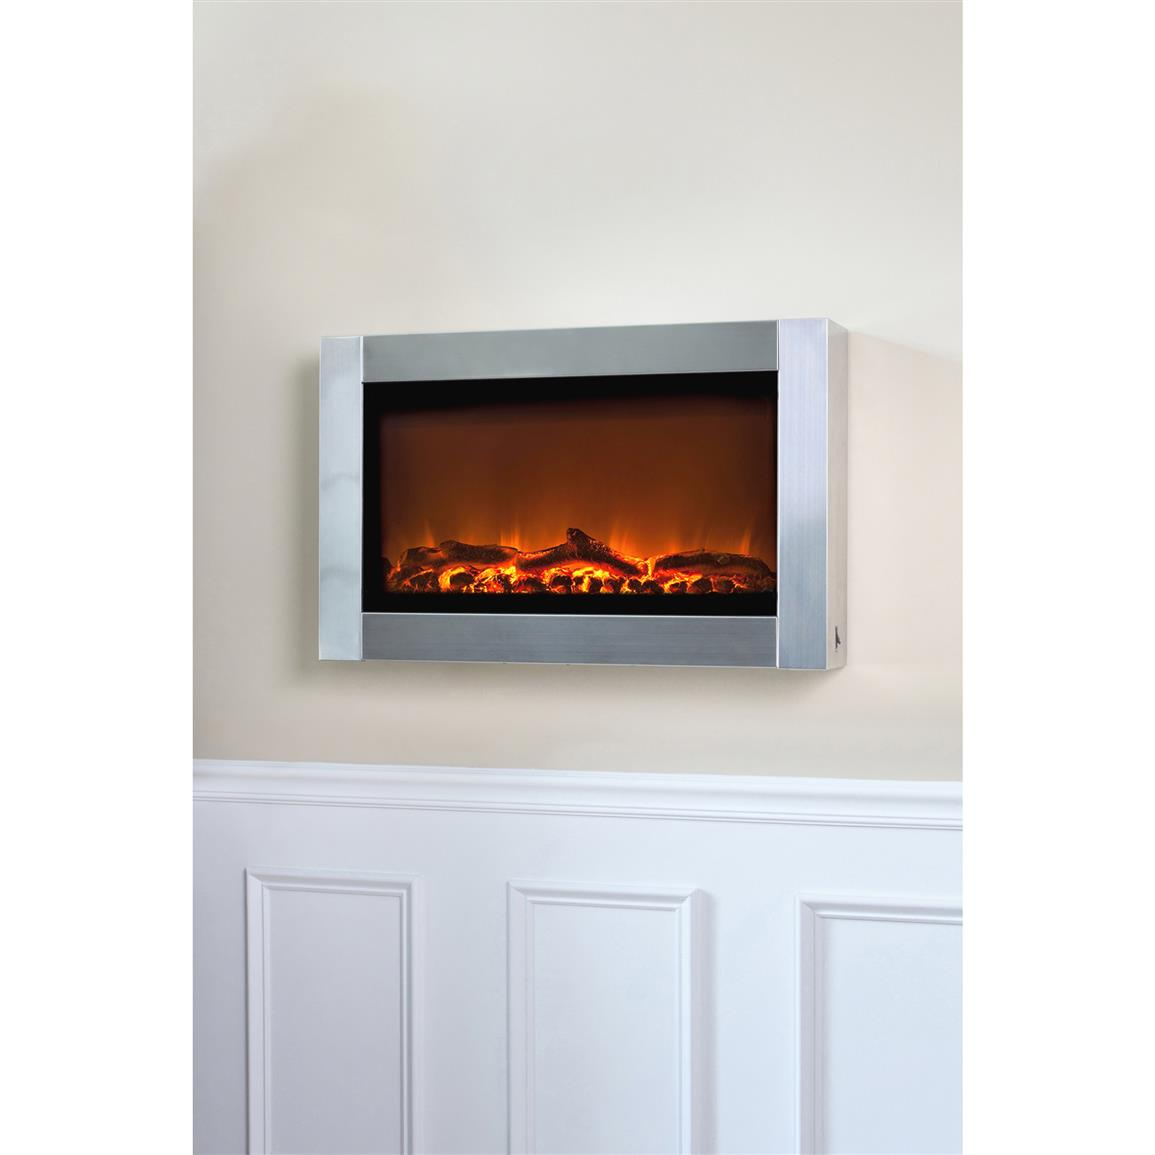 Stainless Steel Fireplace Wall Mounted Electric Fireplace Stainless Steel 281334